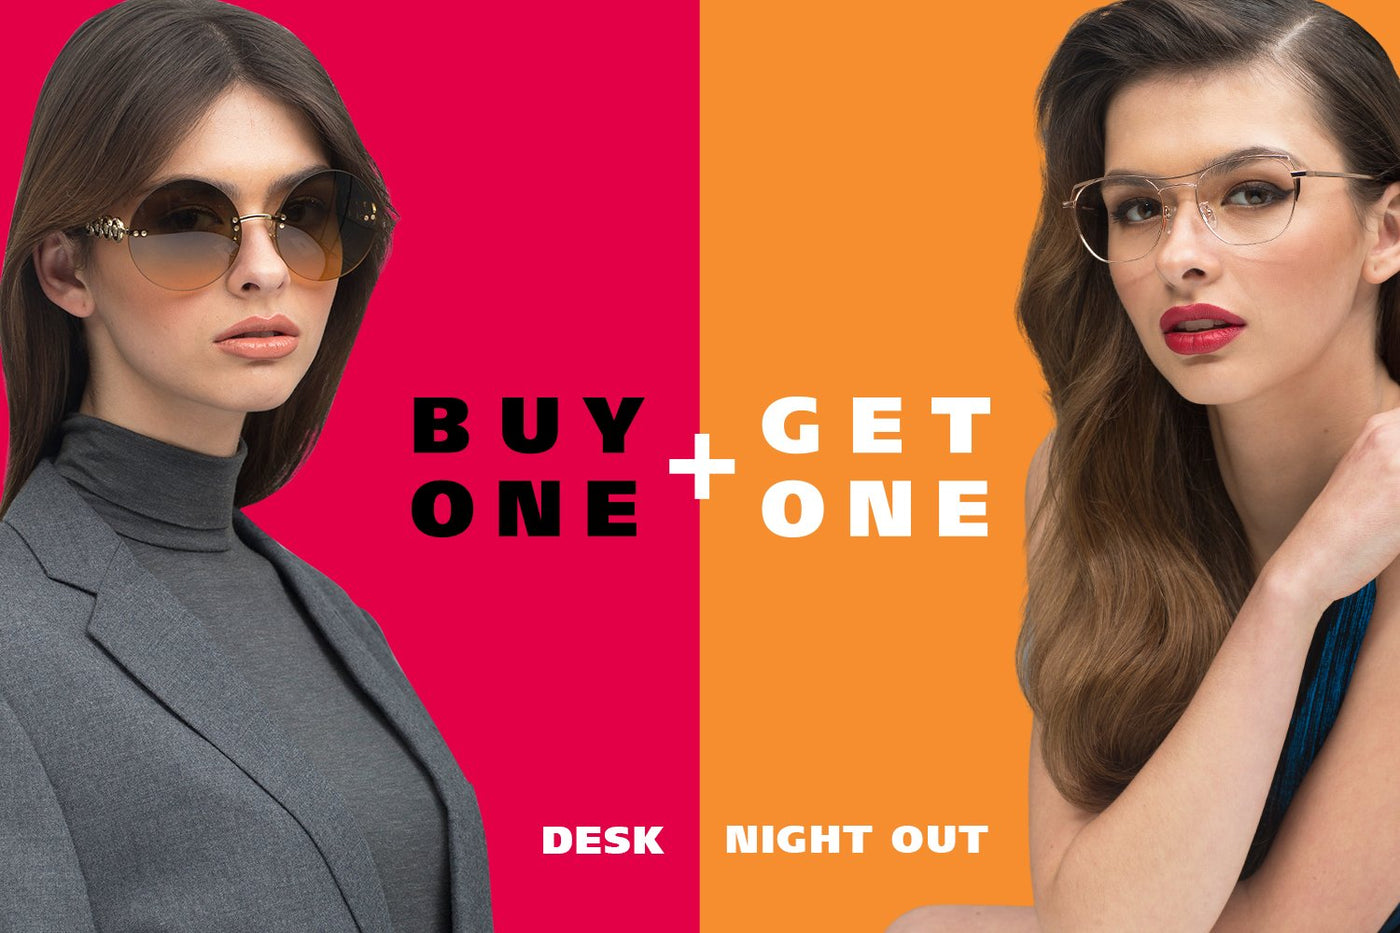 Vision Express Introduces the Buy 1 Get 1 Promo - Vision Express Philippines